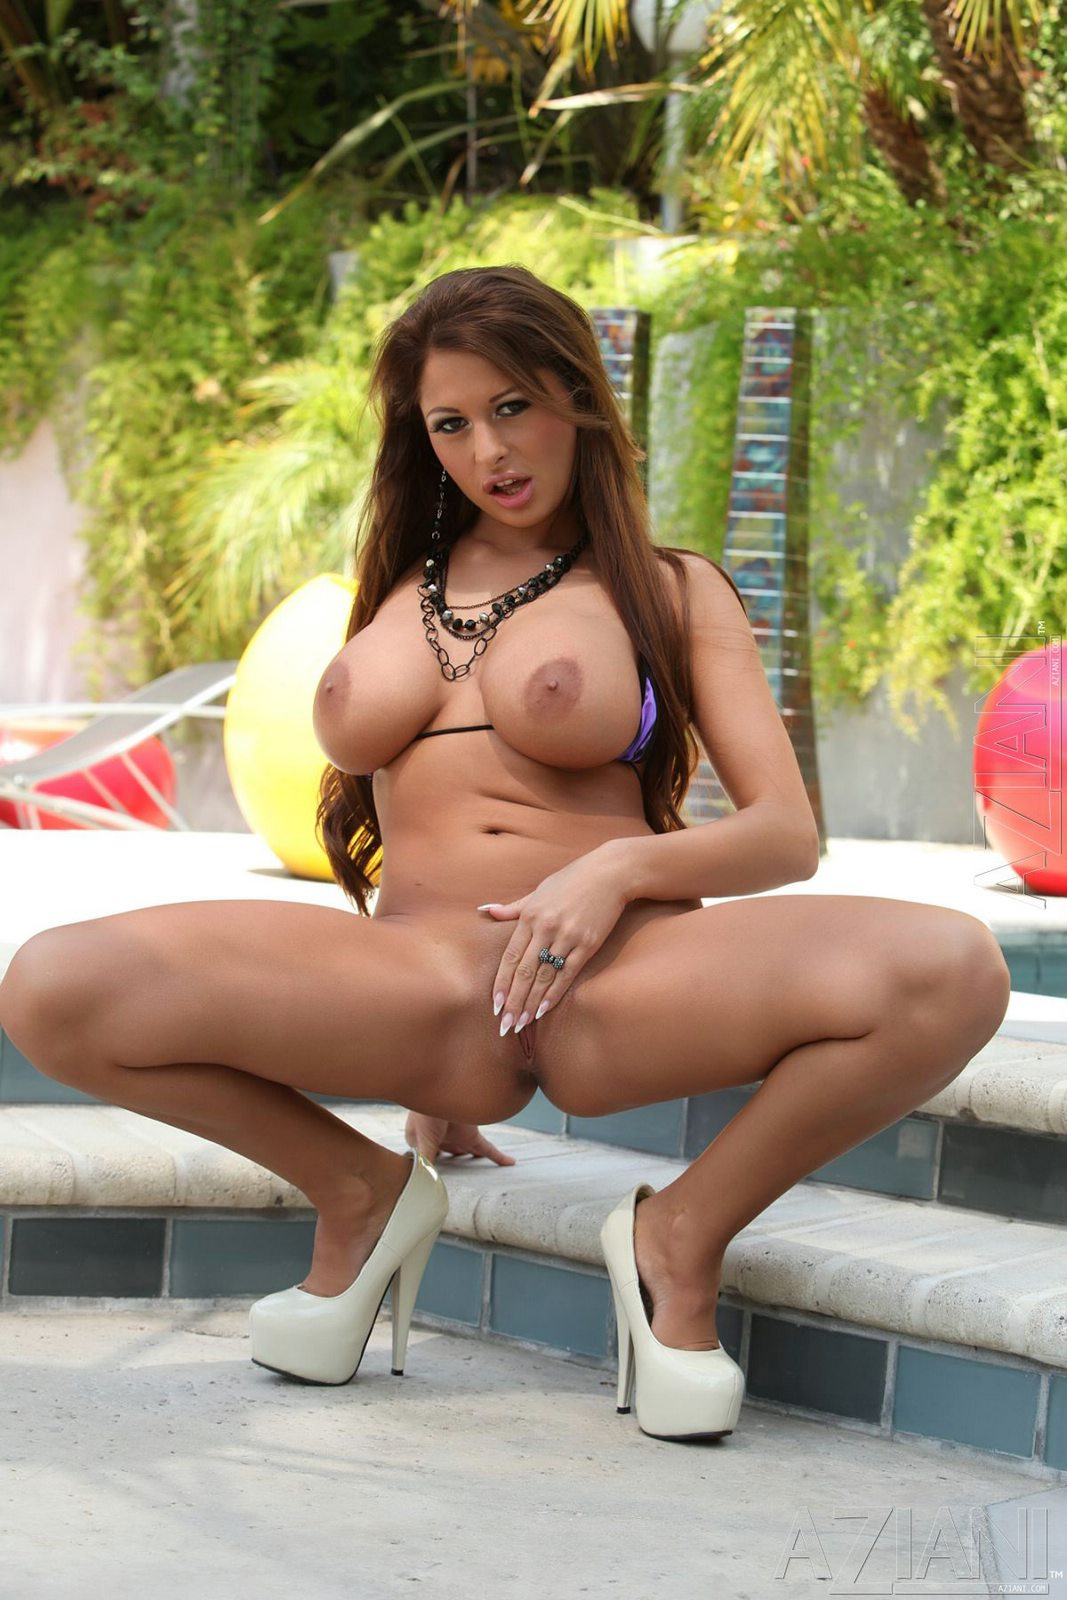 Busty bikini beauty Alison Star posing for your pleasure ...